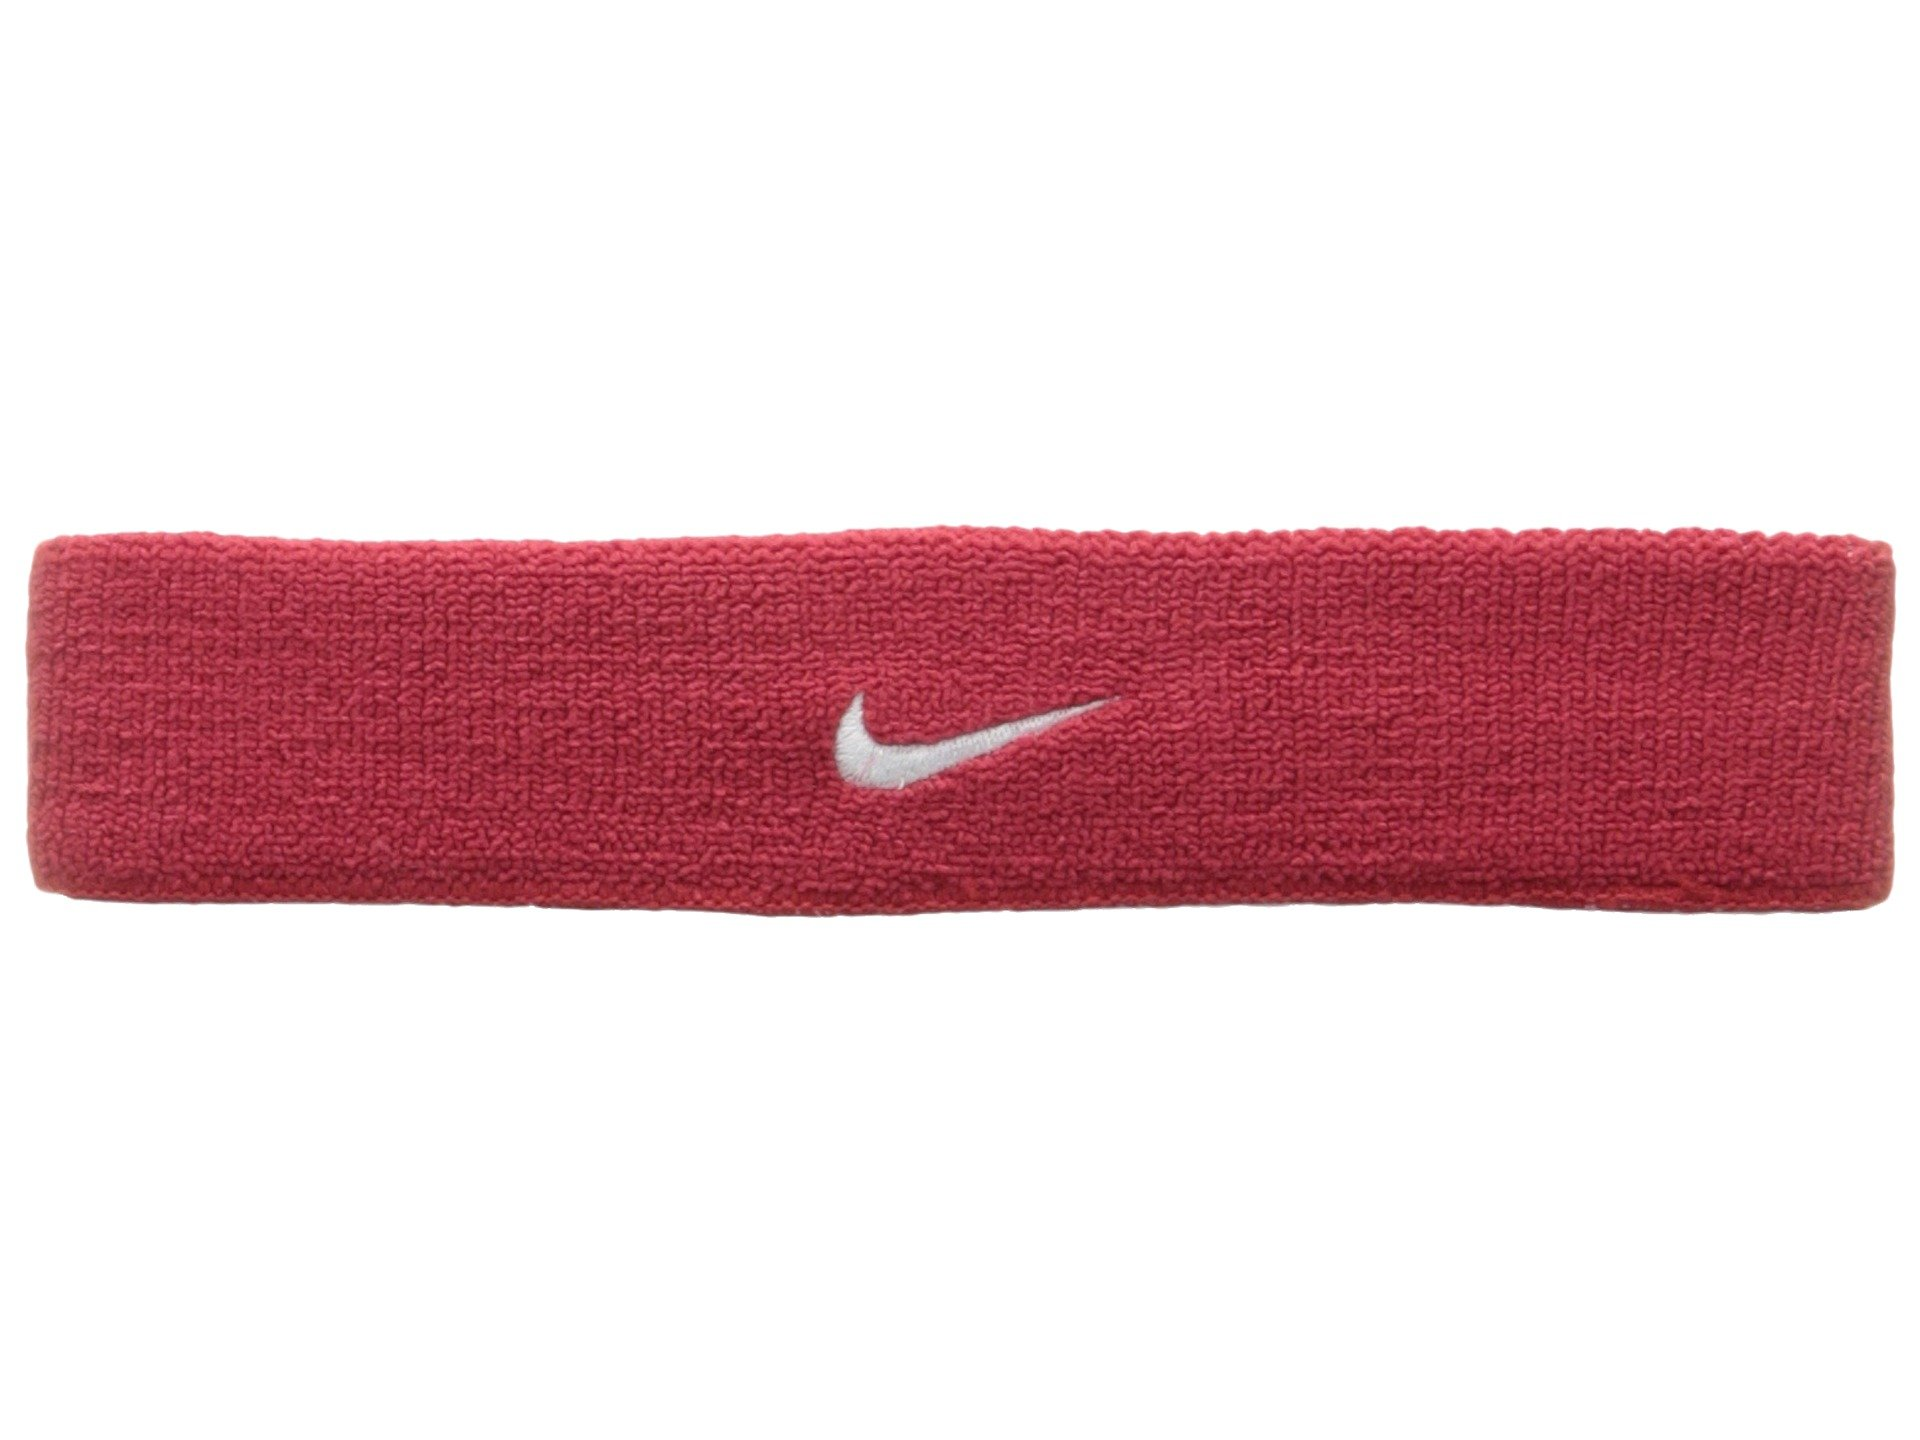 Nike Dri-Fit Home & Away Headband (One Size Fits Most, Varsity Red/White) by Nike